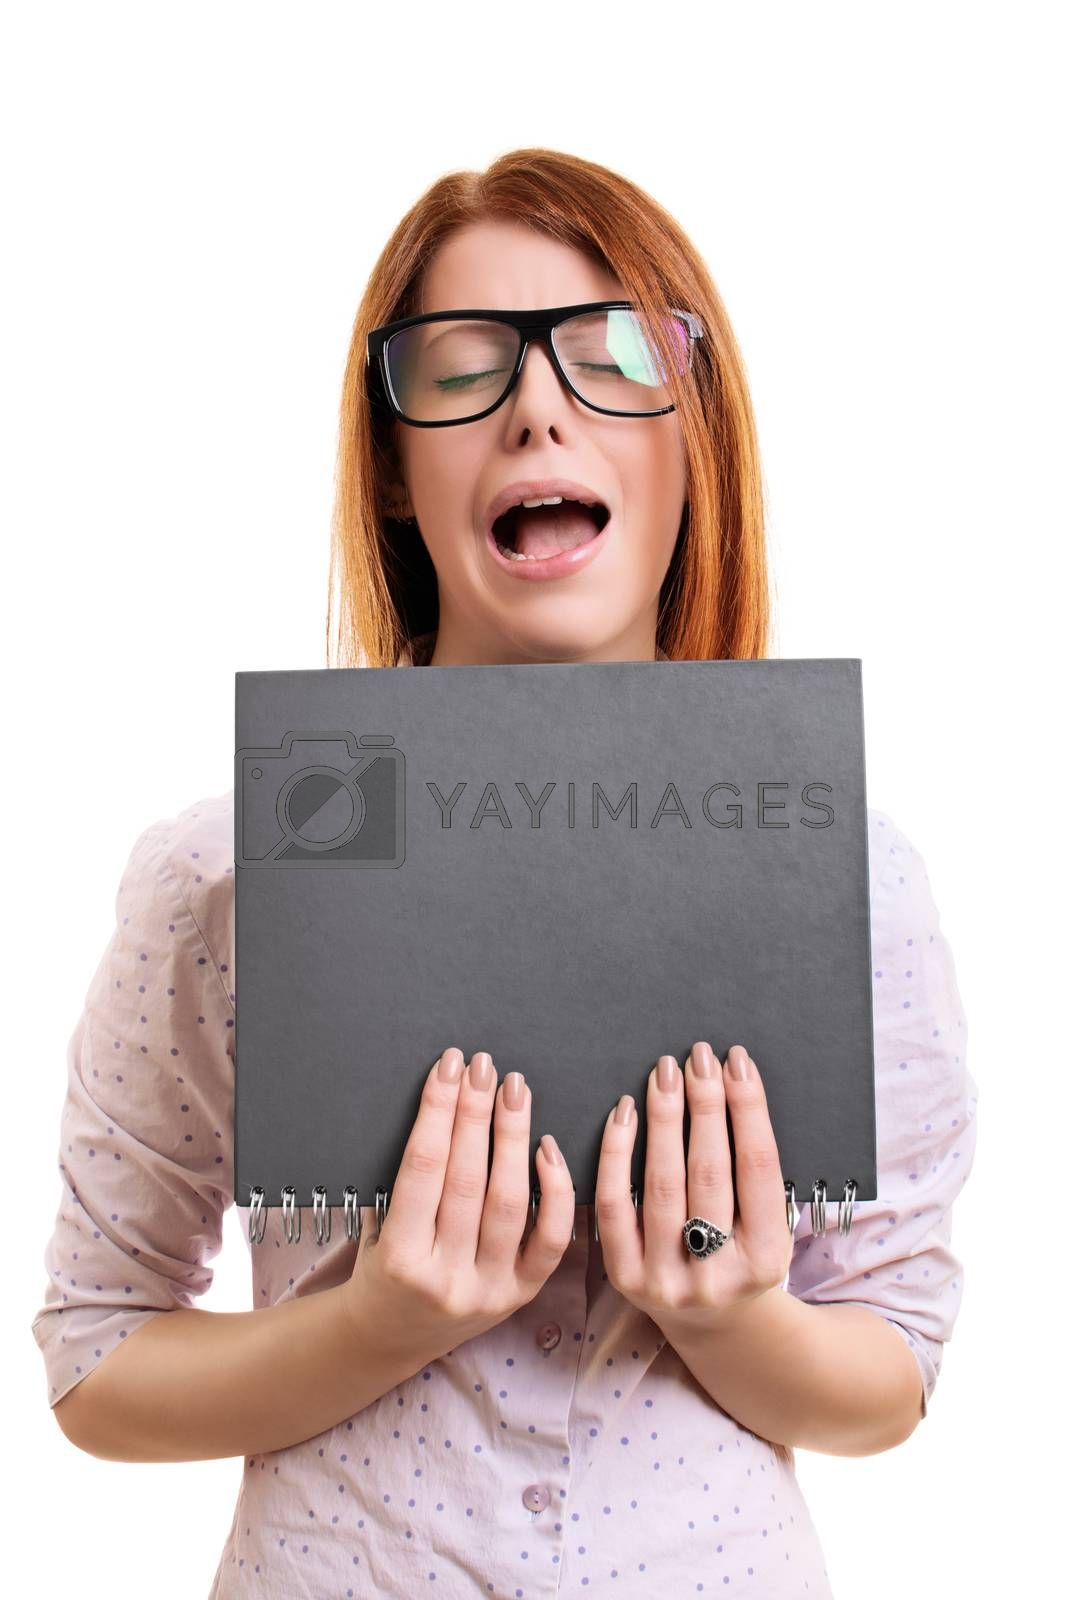 Nerdy young woman with tick glasses with an annoyed and frustrated expression holing a notebook, isolated on white background.